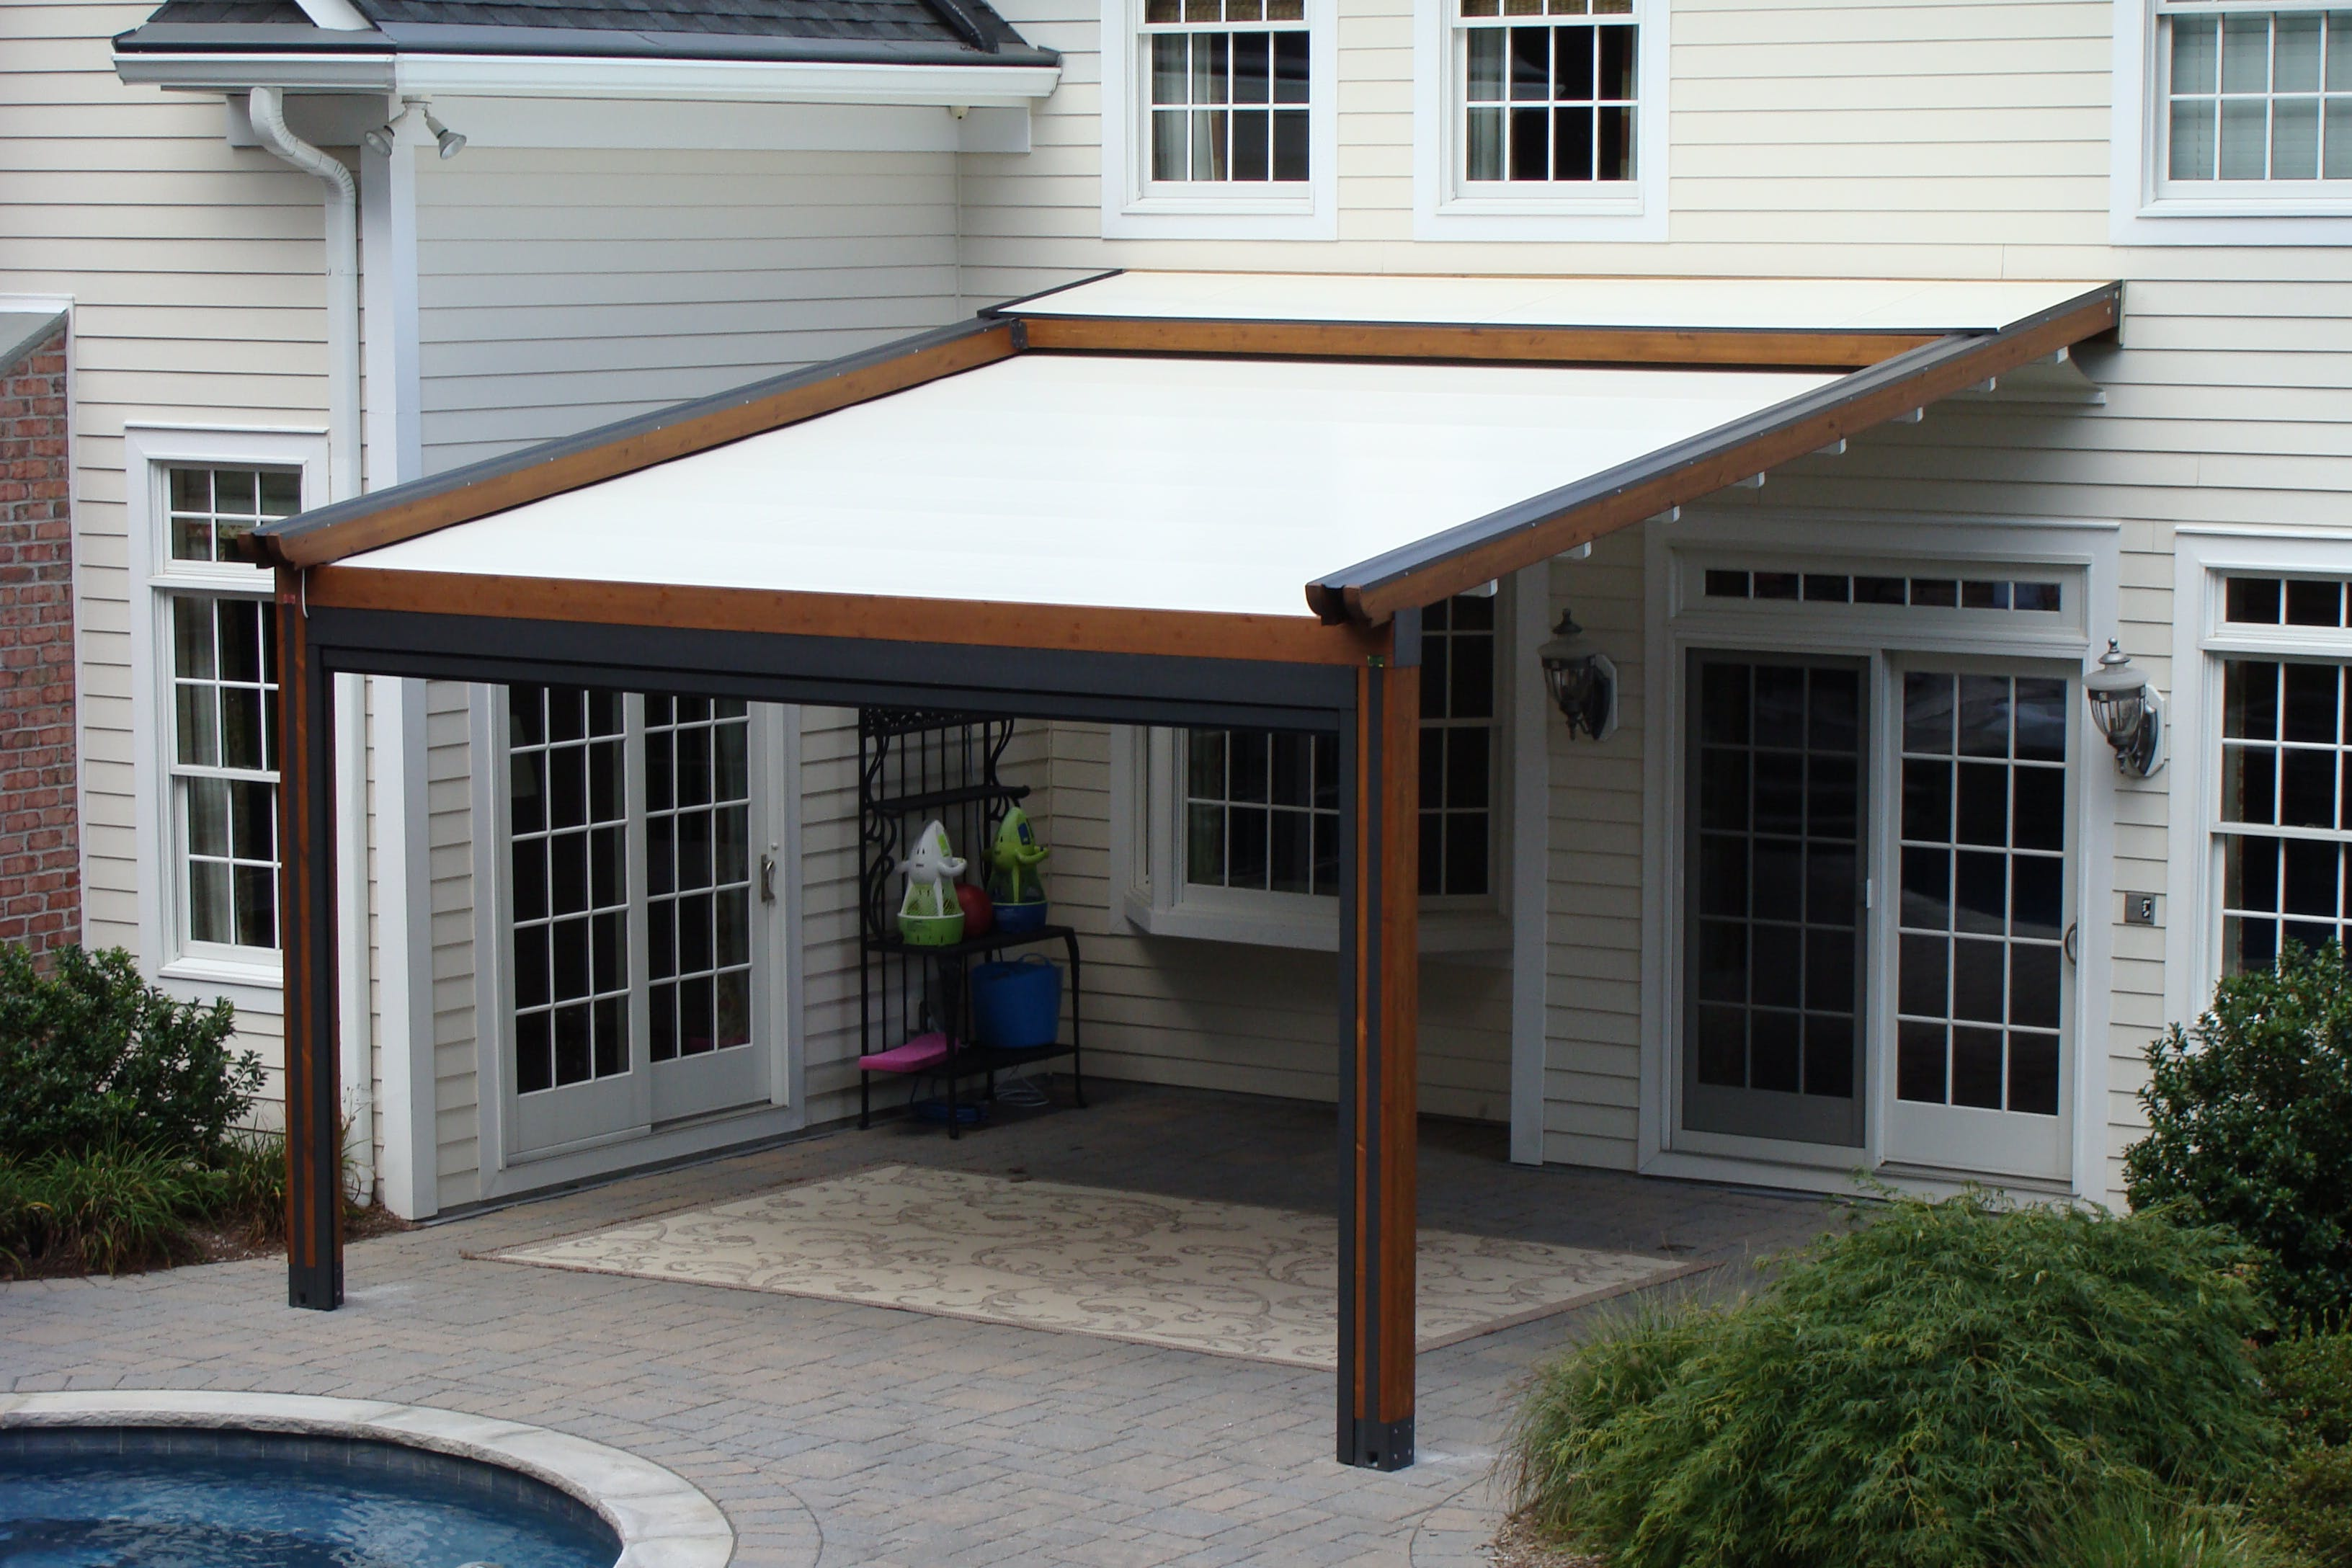 retractable home awning xxl dreamstime energy door window deck manufactured nj awnings pleasing saving aesthetically porch